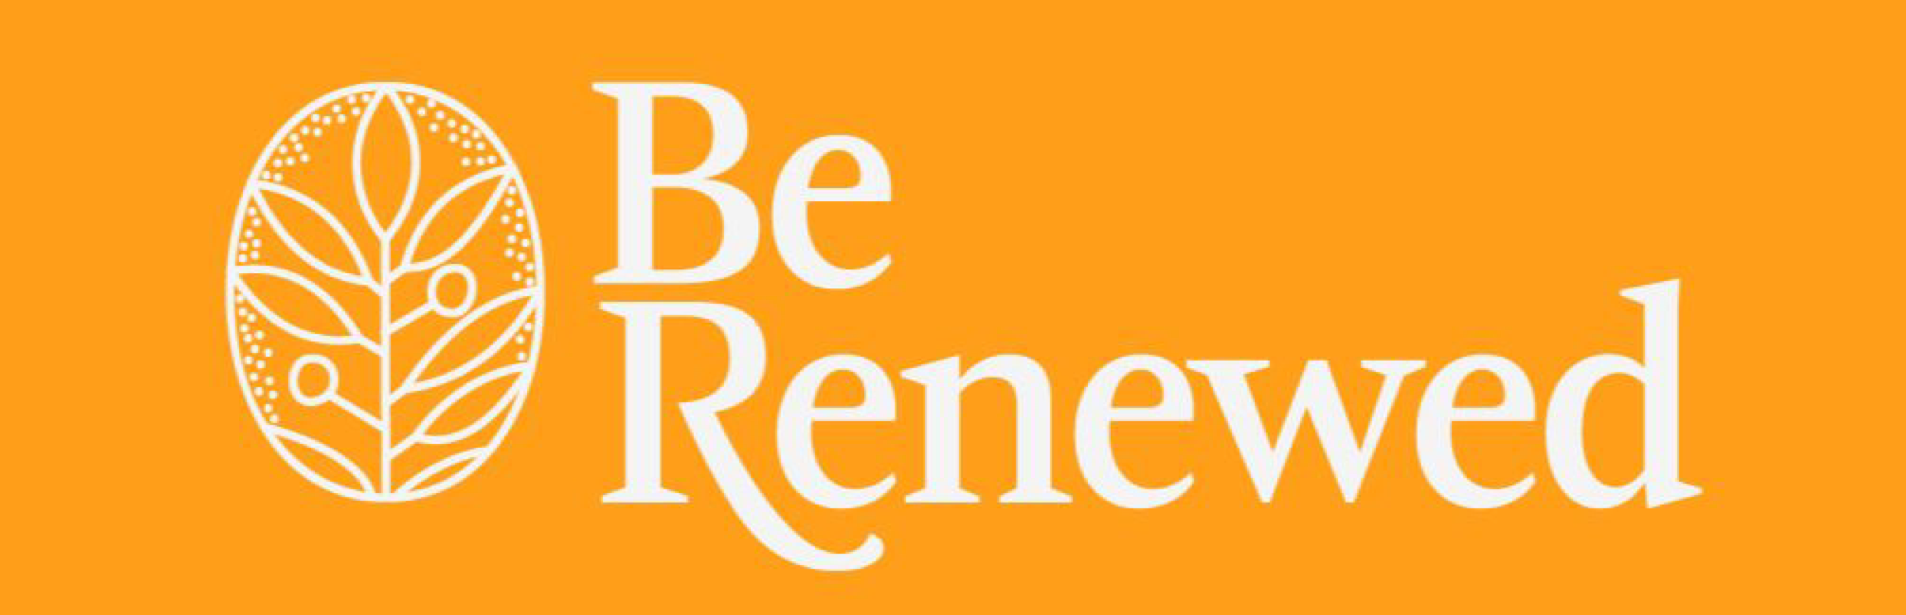 Be Renewed (not clear)